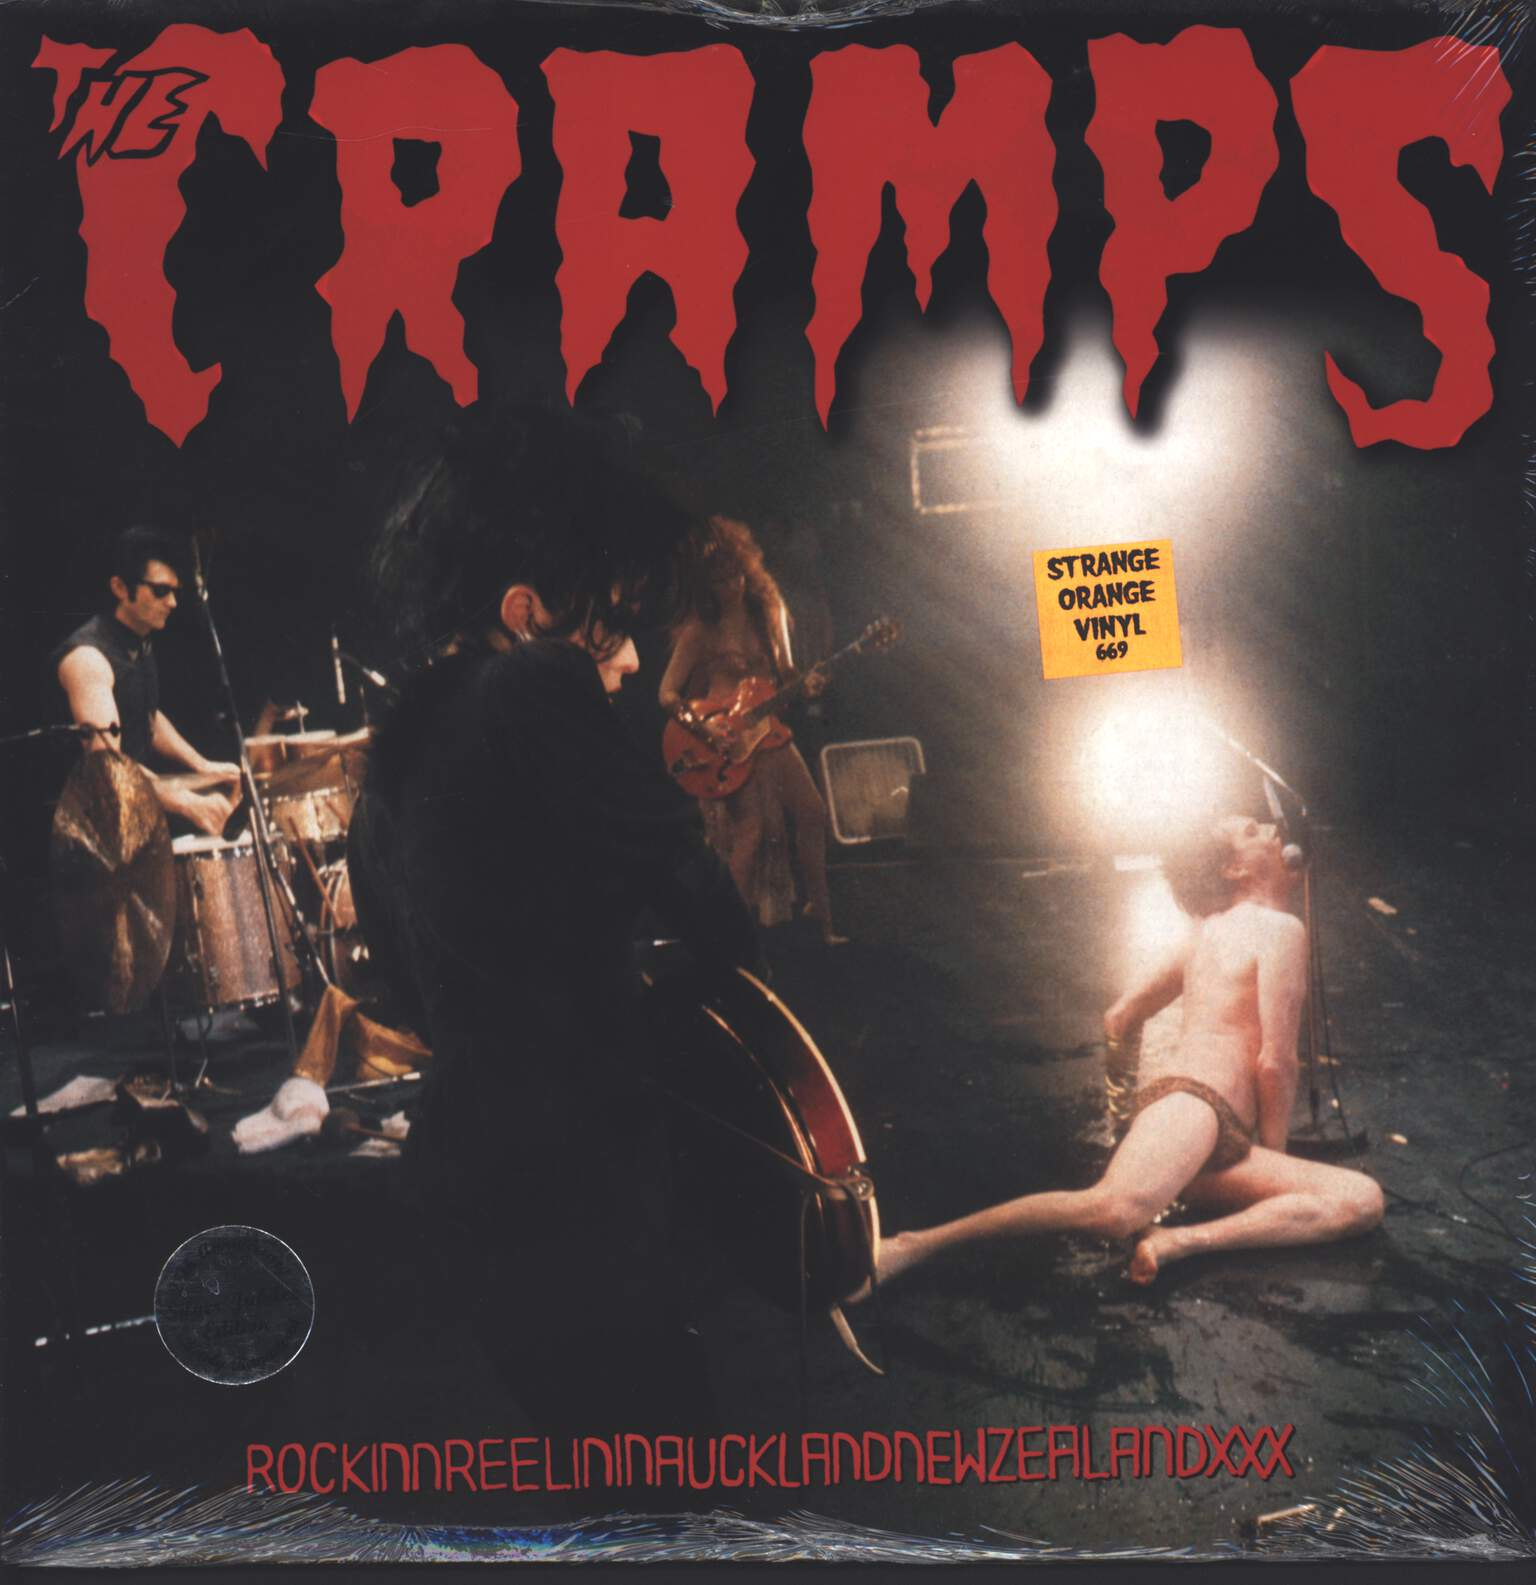 The Cramps: RockinnReelininAucklandNewZealandXXX, LP (Vinyl)